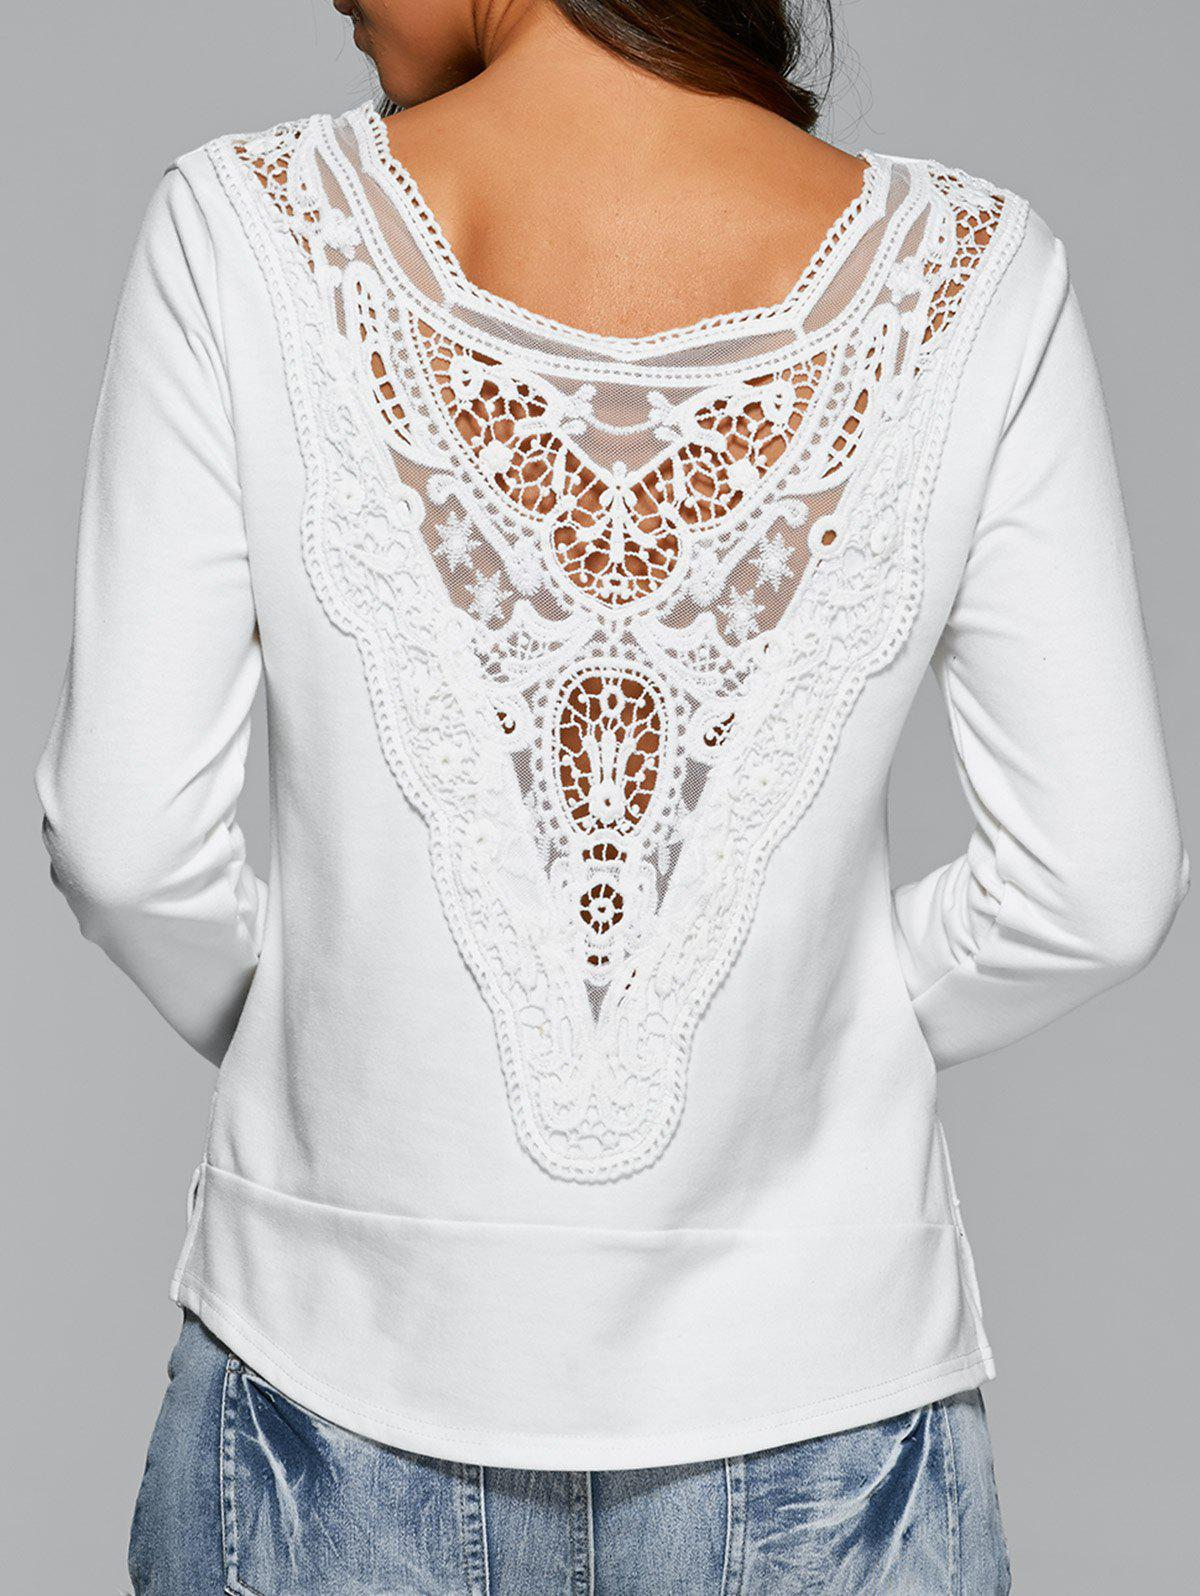 Long Sleeve Lace Back T-Shirt - WHITE S